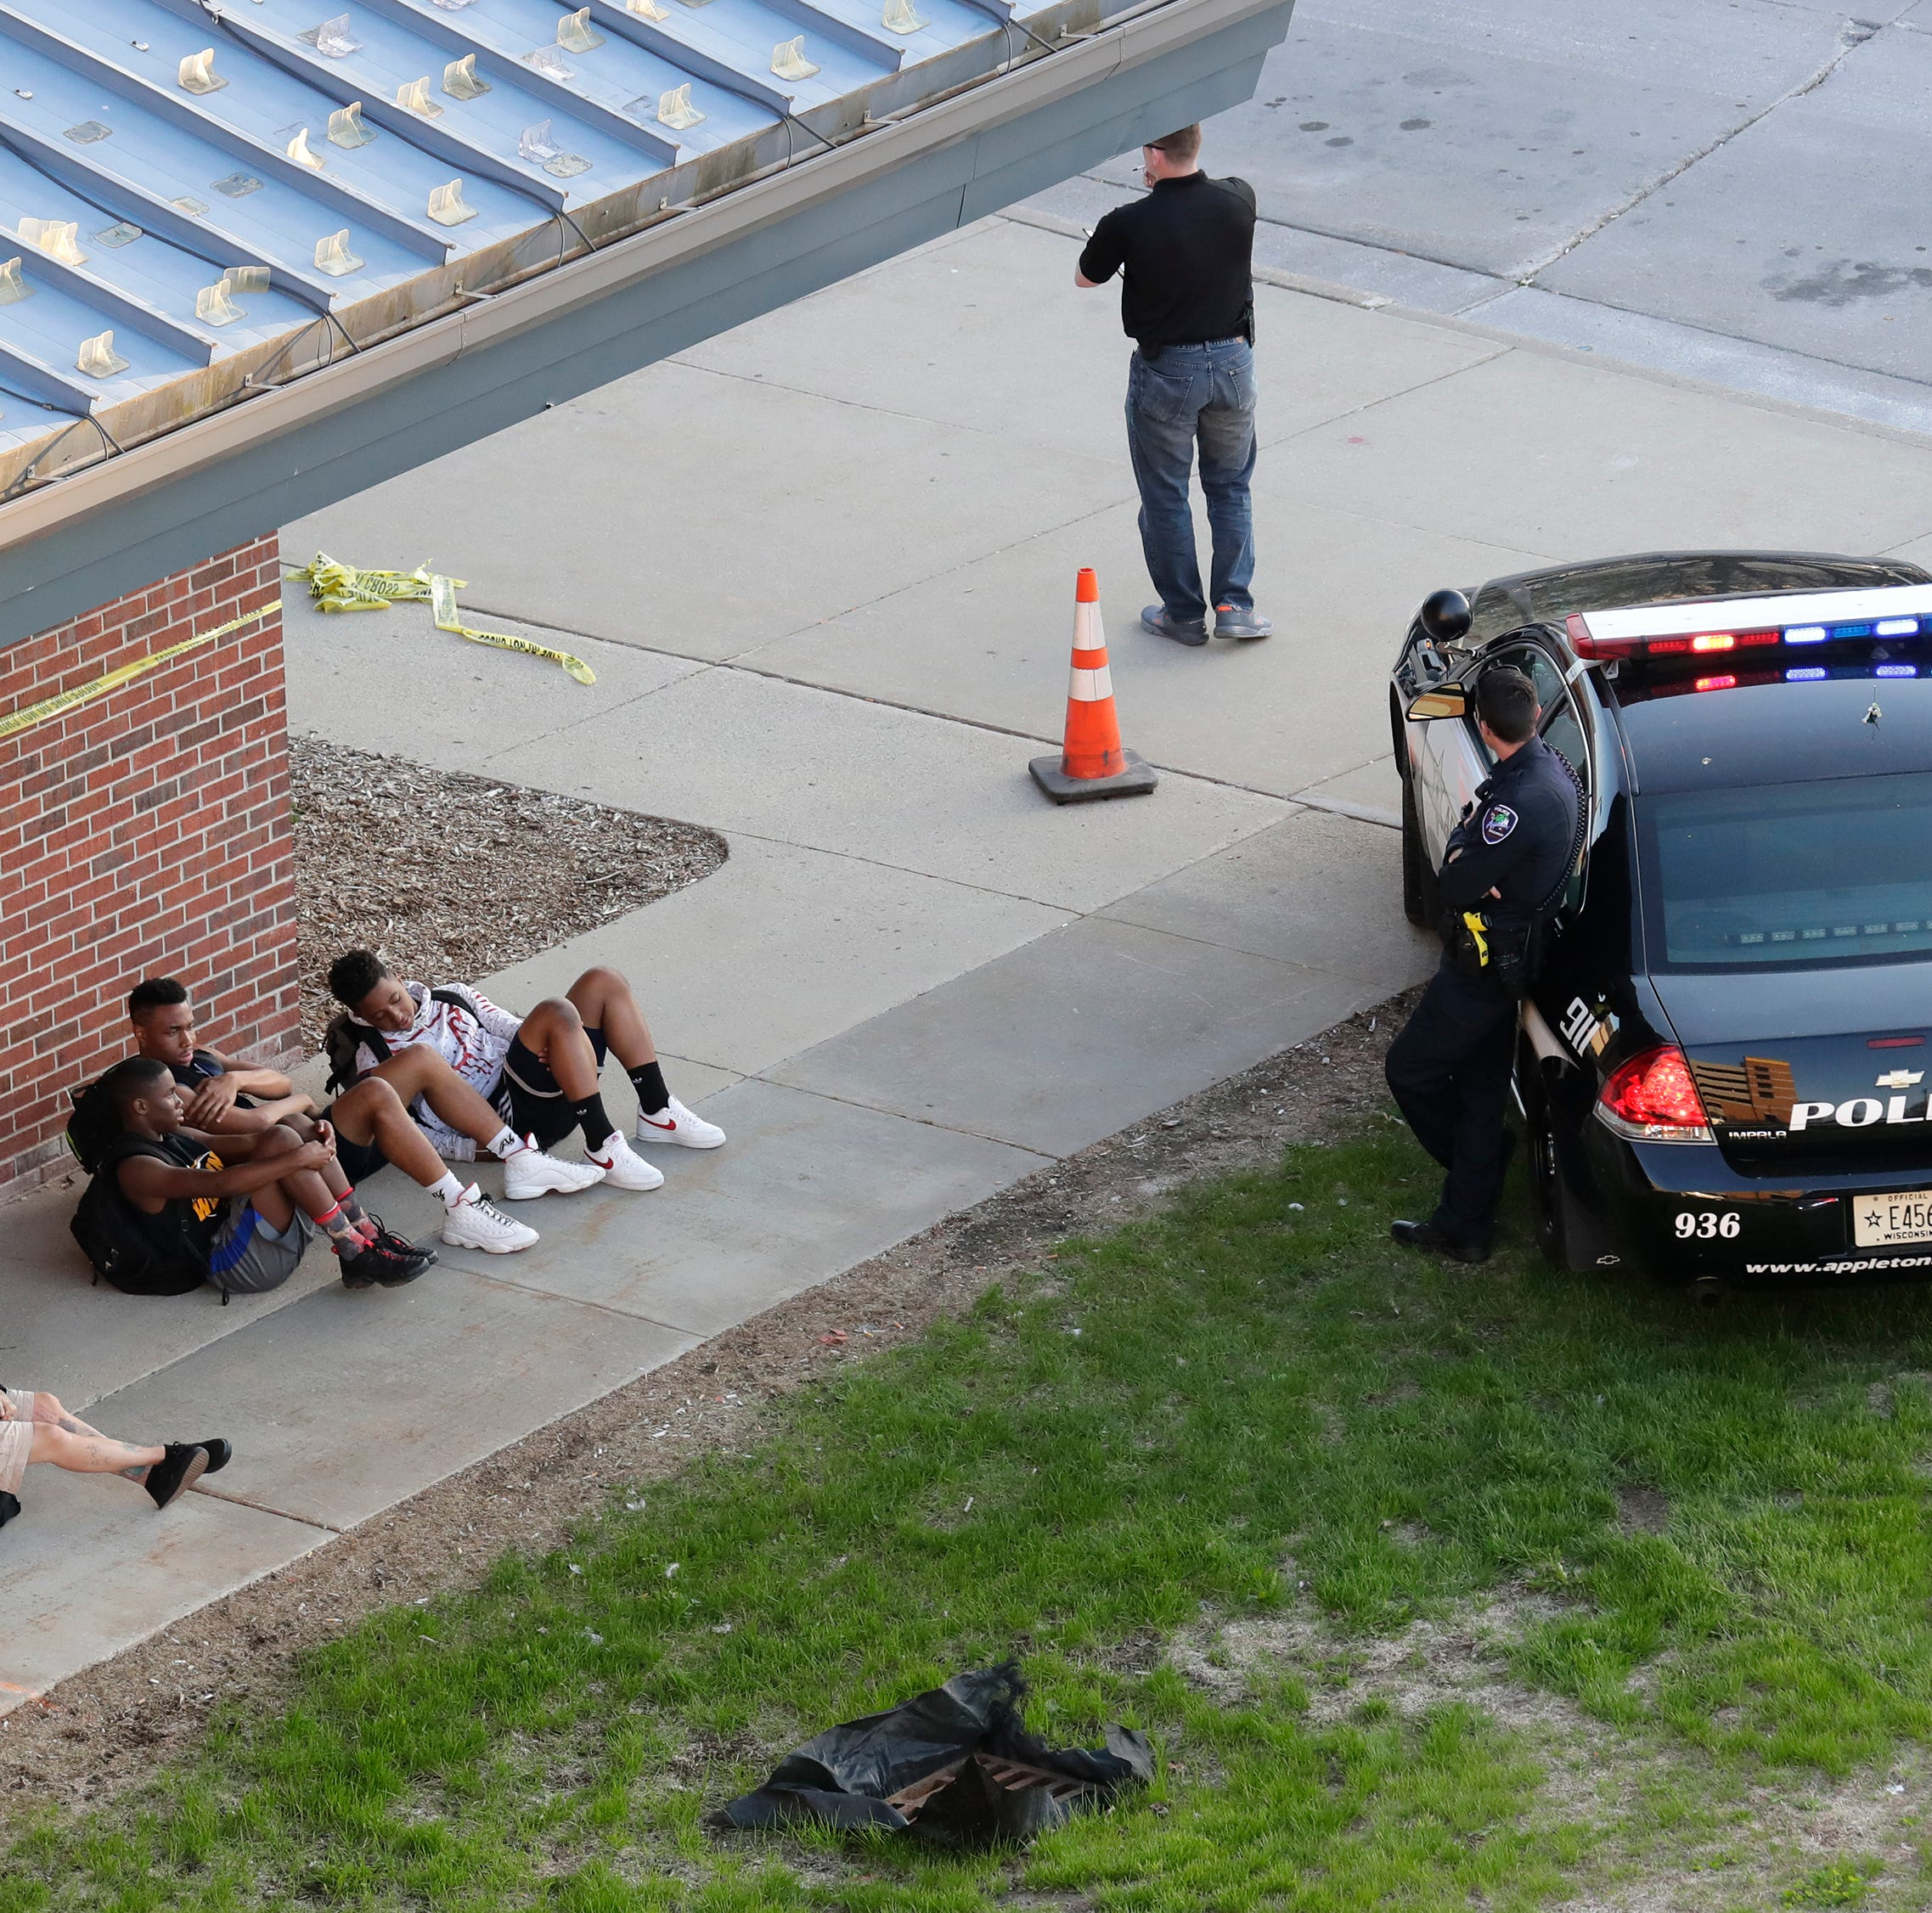 What we know about the Appleton shooting